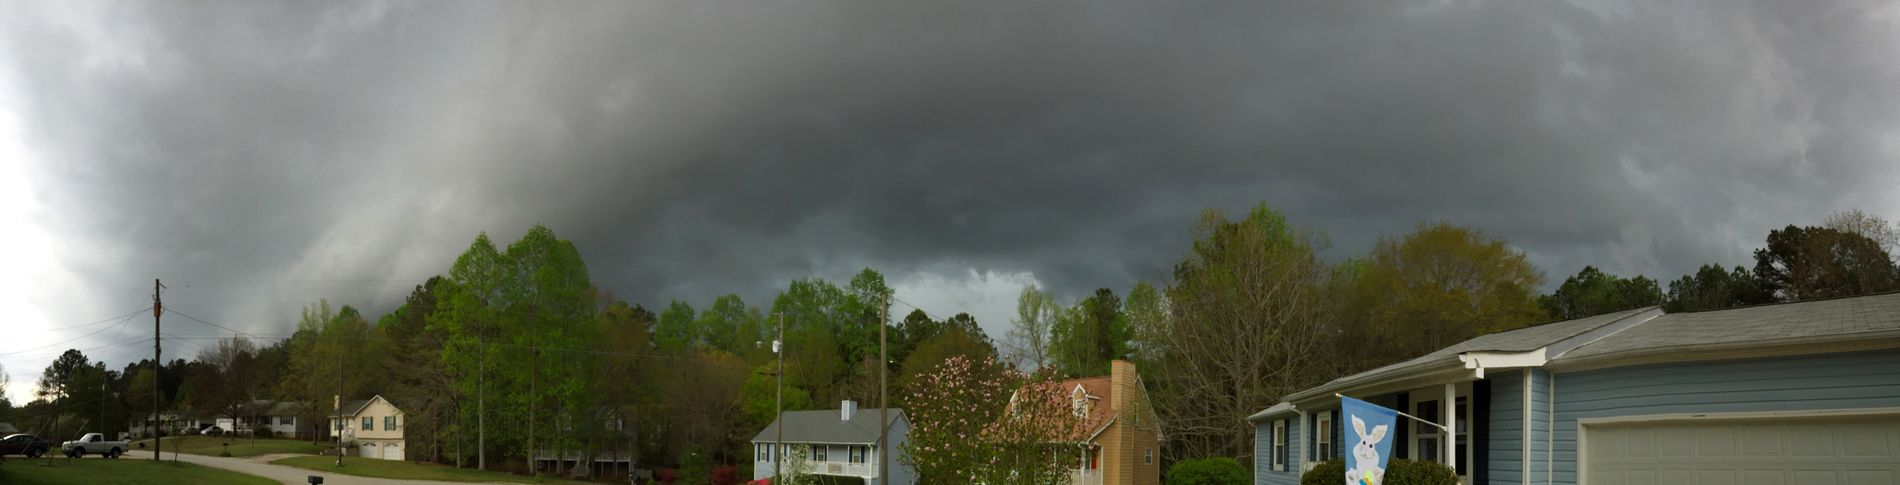 The leading edge of a line of thunderstorms that moved through the Atlanta area this evening. Clouds And Sky Panaroma Thunderstorm WeatherPro: Your Perfect Weather Shot